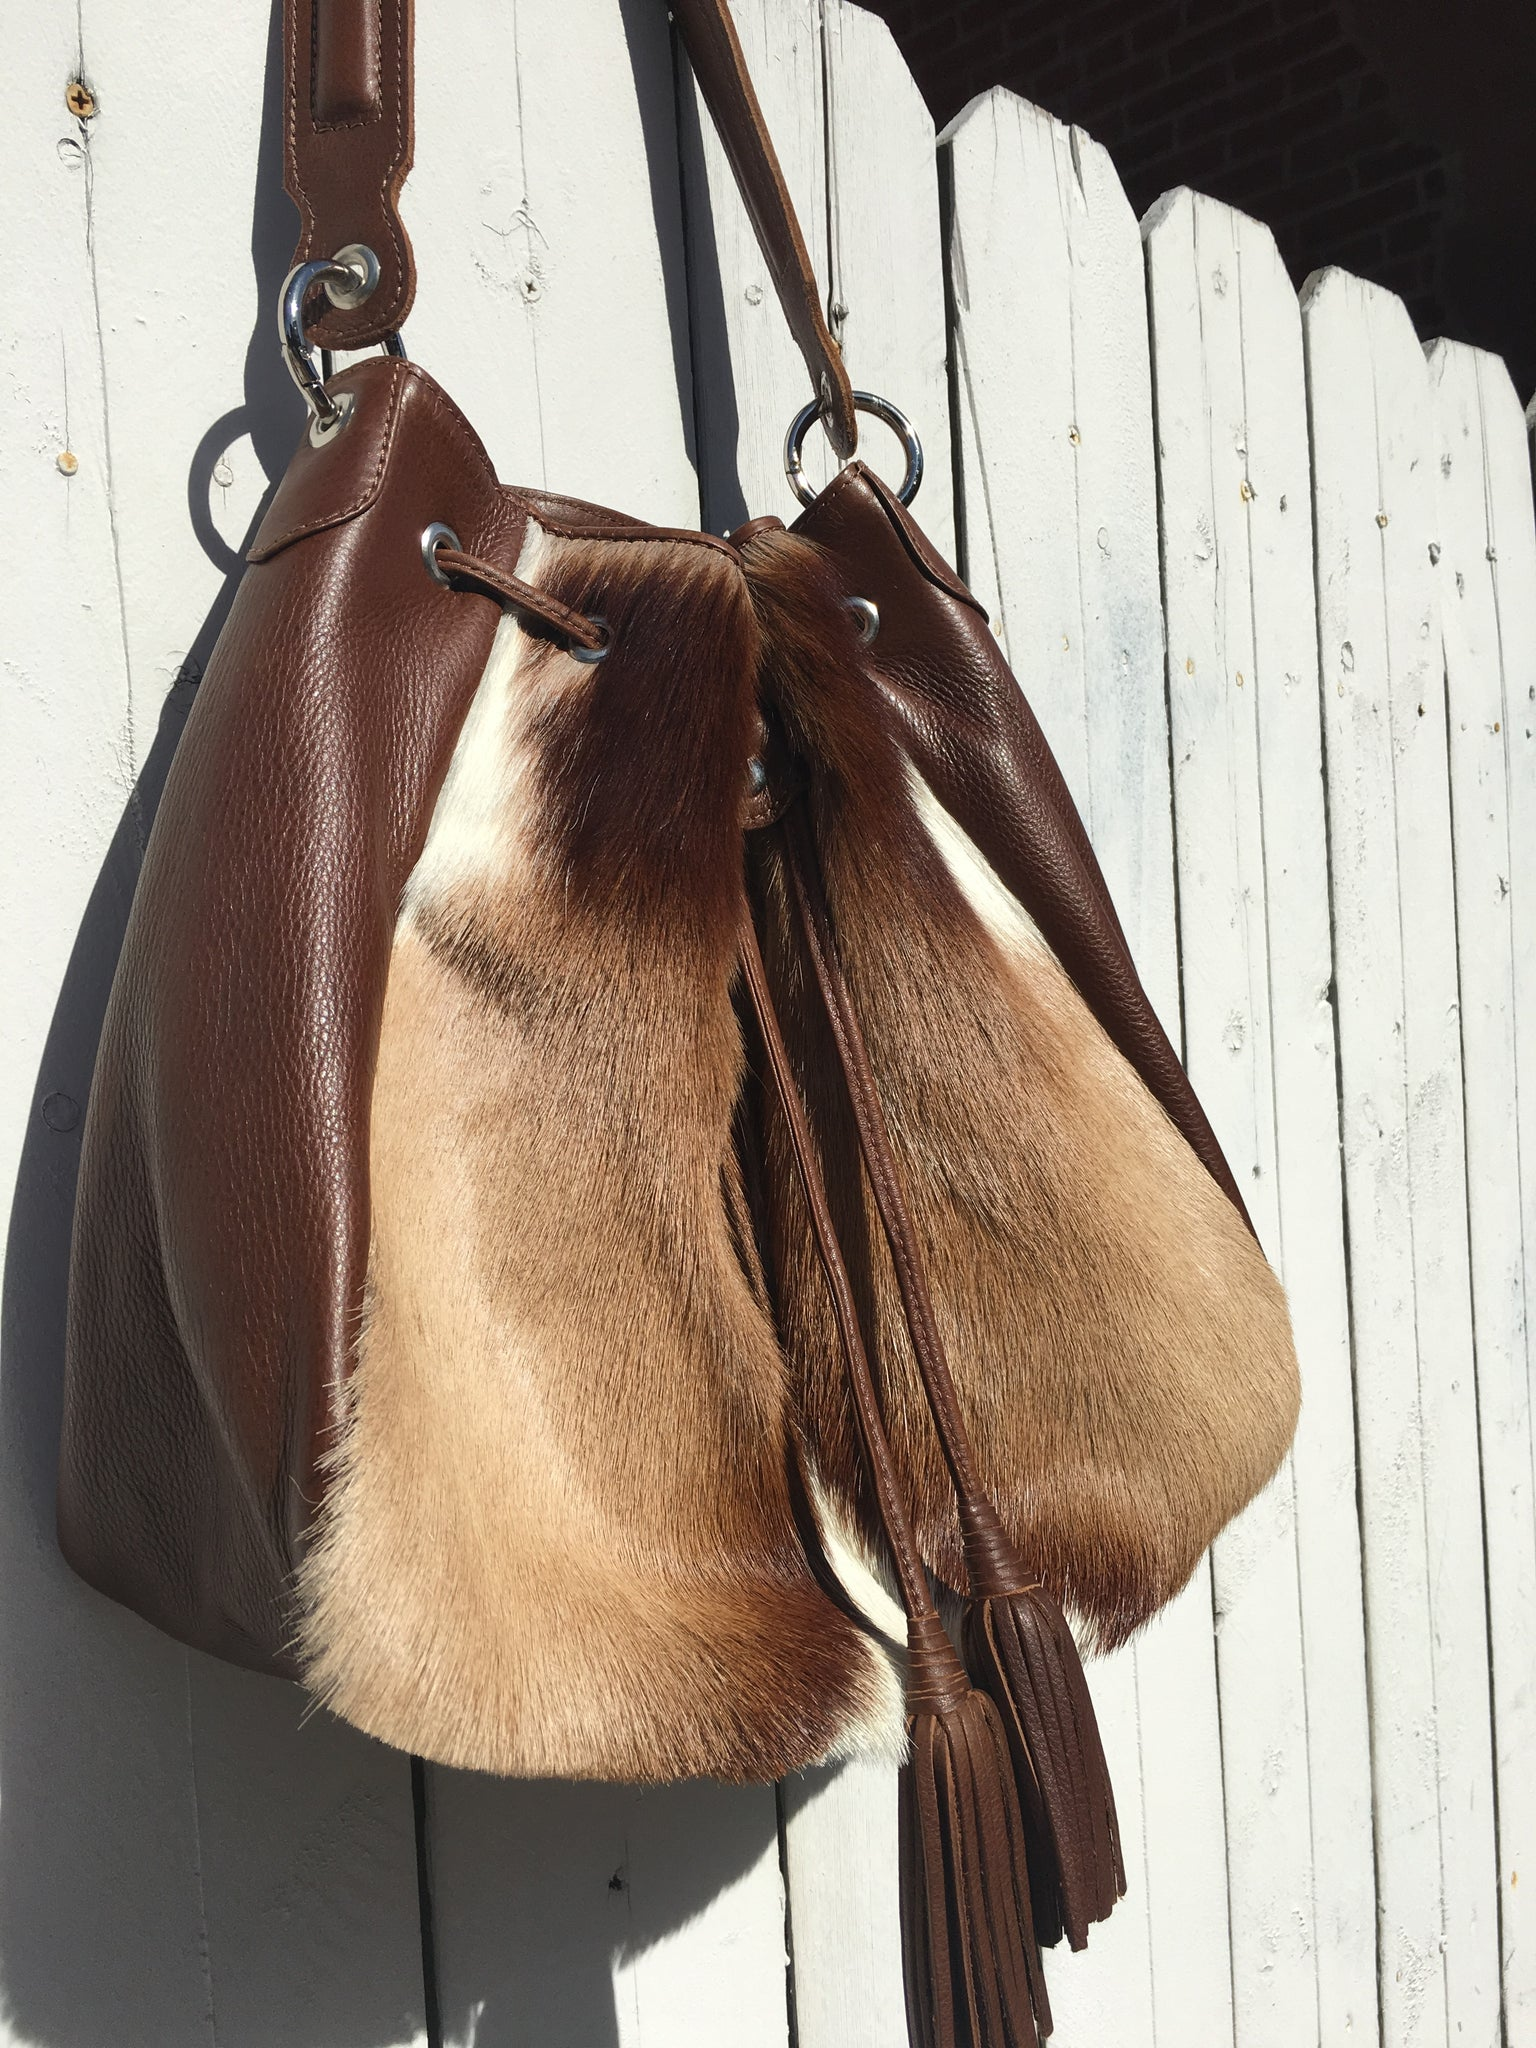 Springbok Antelope Traveler Bag light brown African bag furry bold vegan leather fur quality handmade handbags tote